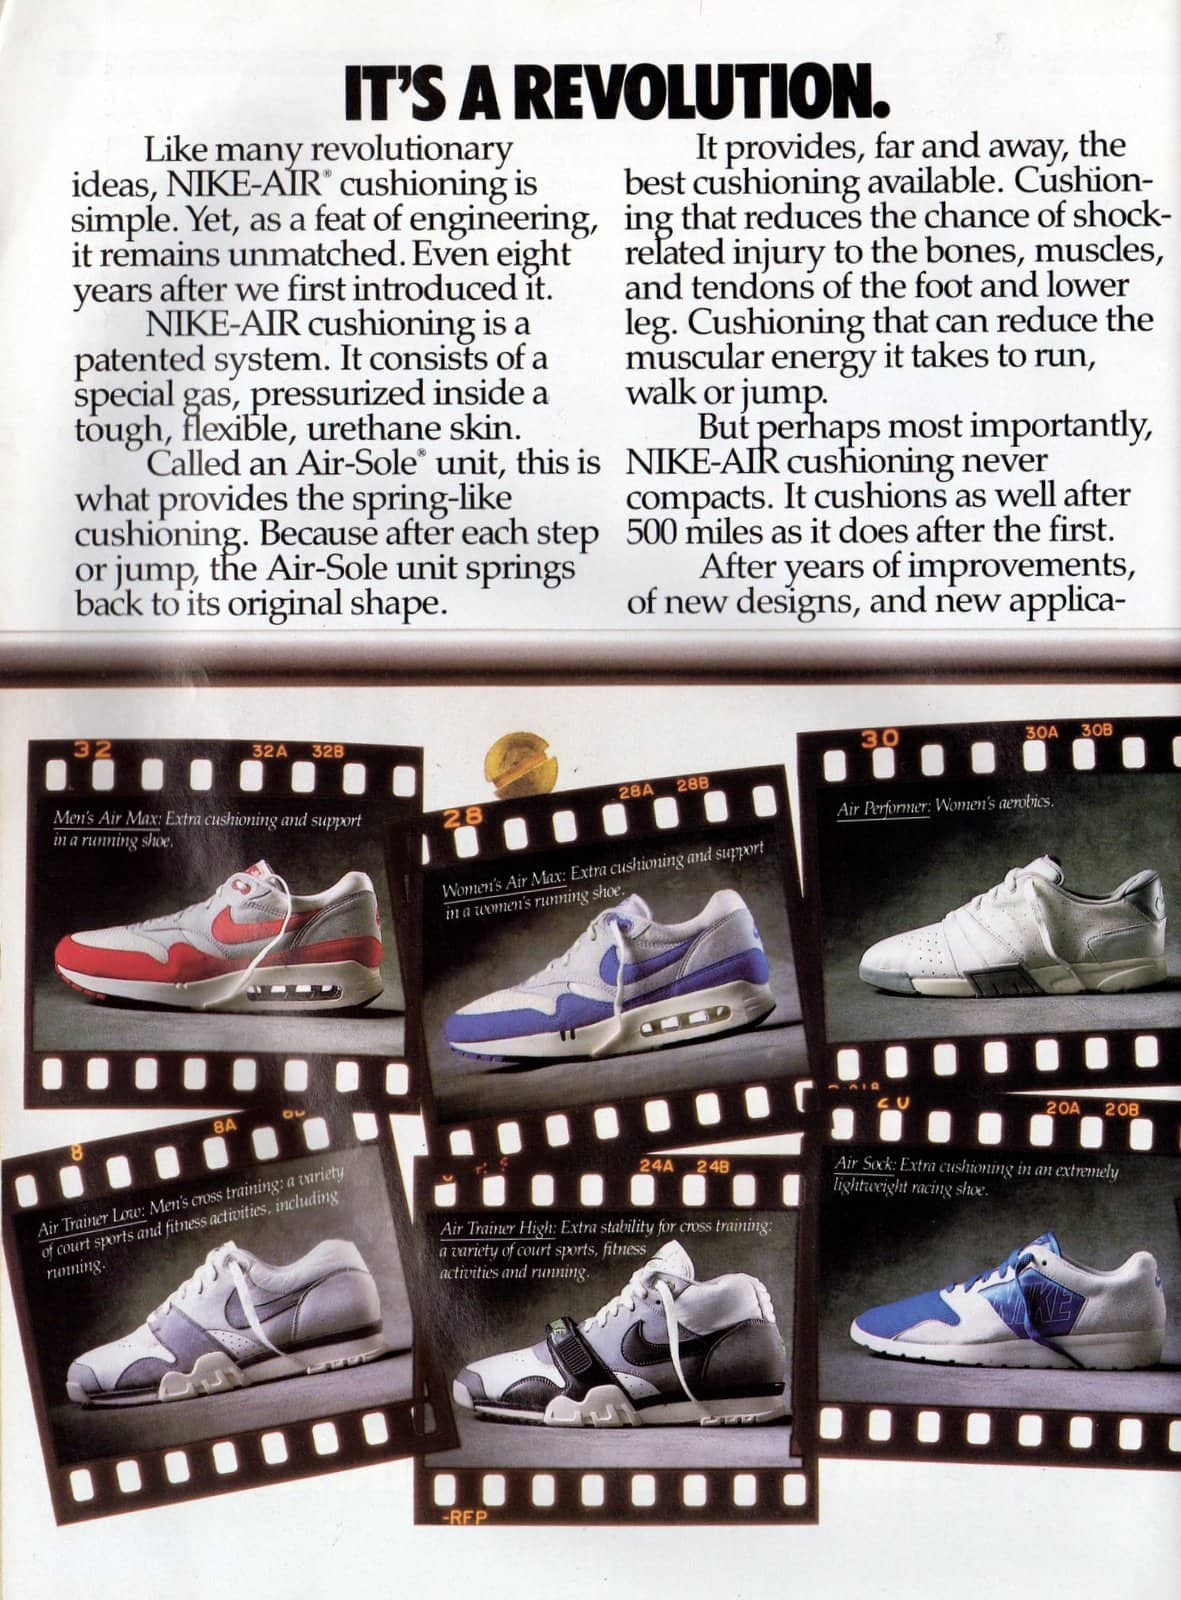 Vintage Nike Air shoes ad from March 1987 (6)